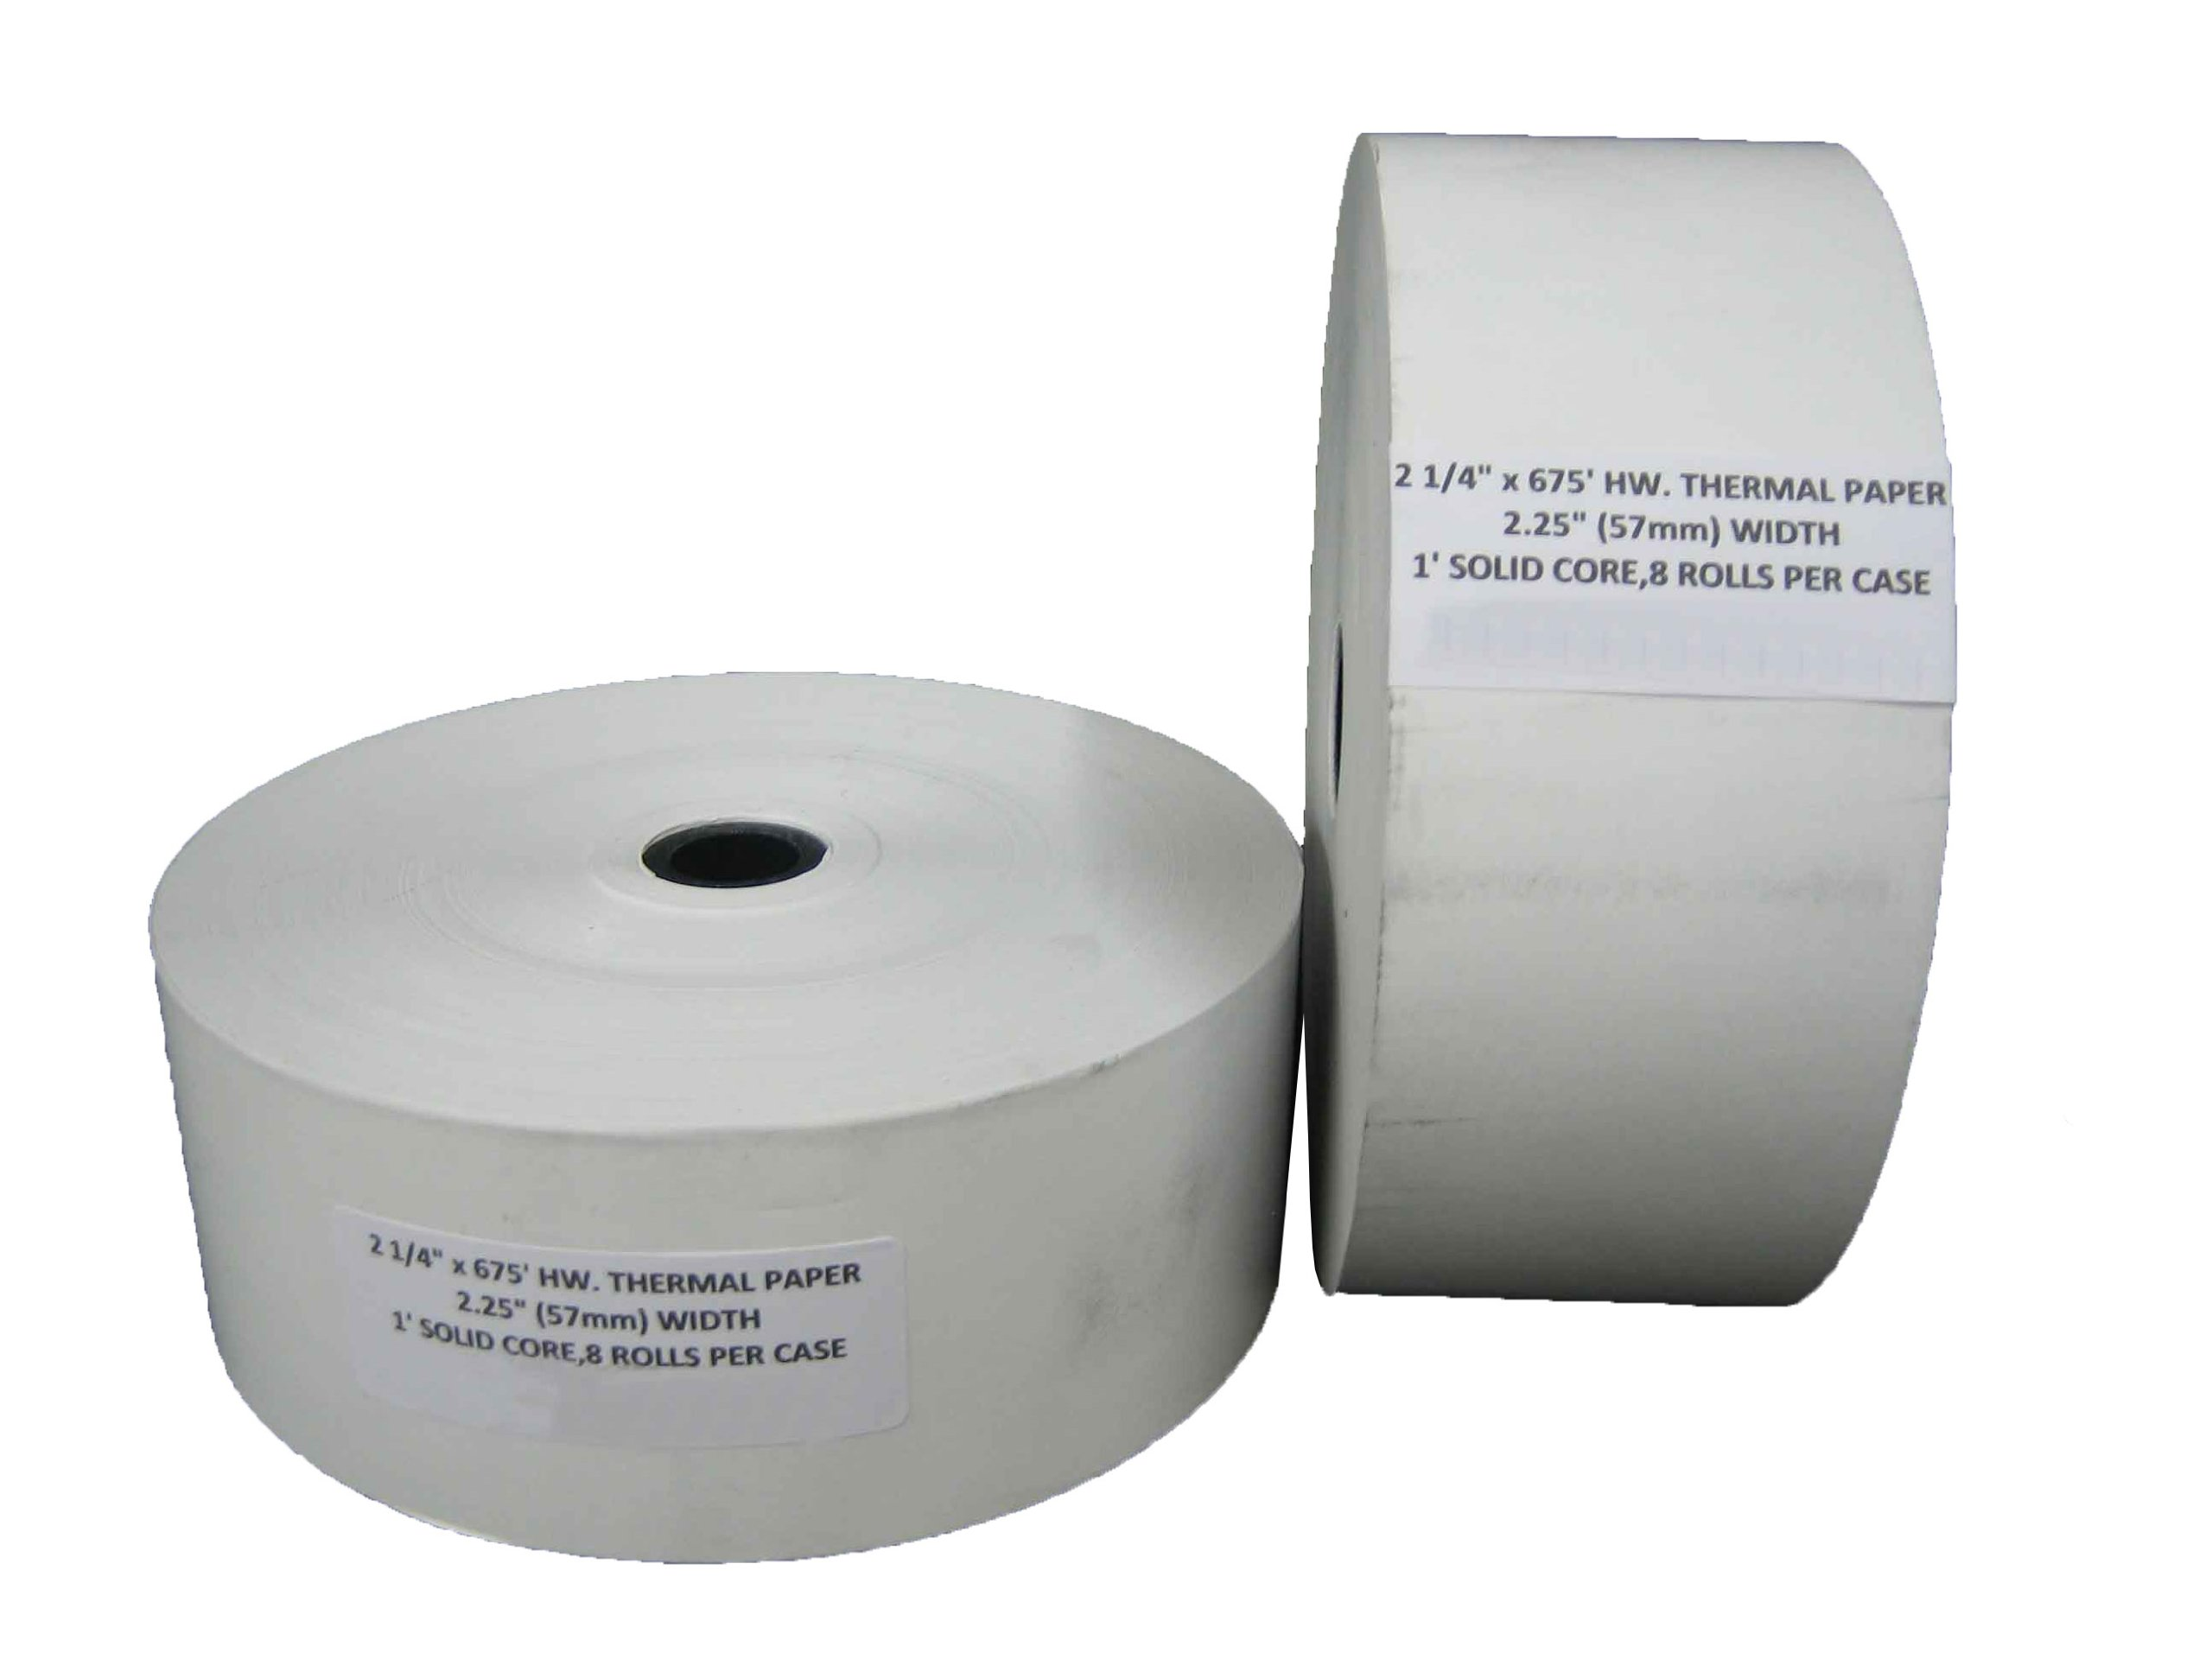 """2 1/4"""" x 675' HEAVY WEIGHT THERMAL ATM RECEIPT PAPER 8 ROLLS / CASE"""